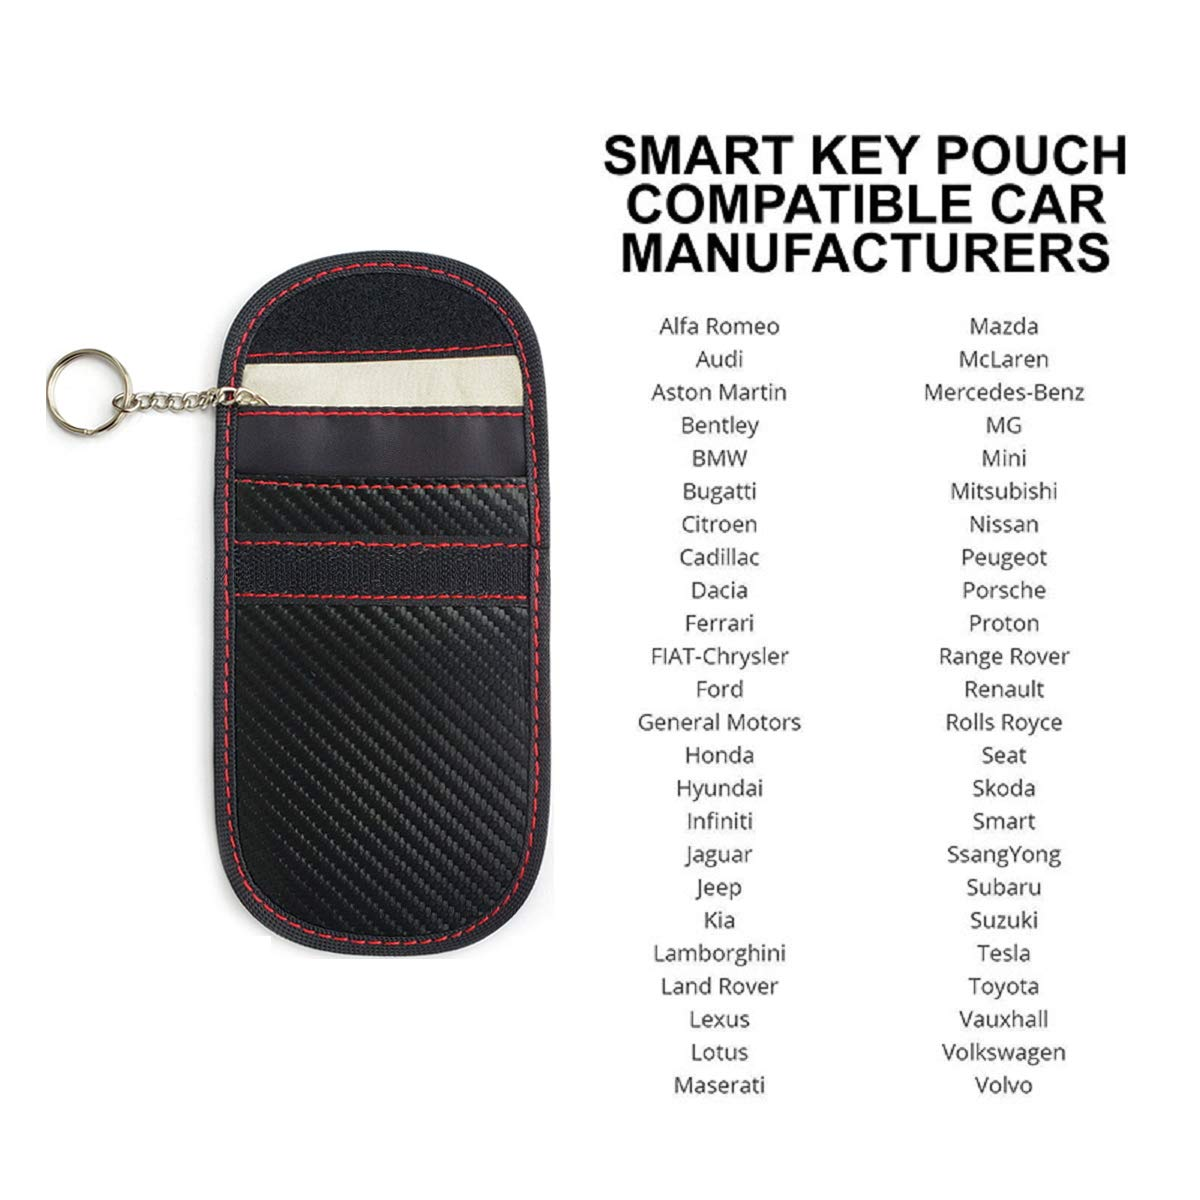 inches 3.9 x 5.9 2 Pack Healthy Cell Phone Privacy Protection Security WiFi//GSM//LTE//NFC//RF Blocker Faraday Key fob Bags,Car Keyless Entry Signal Blocker Anti Theft Lock Devices Black